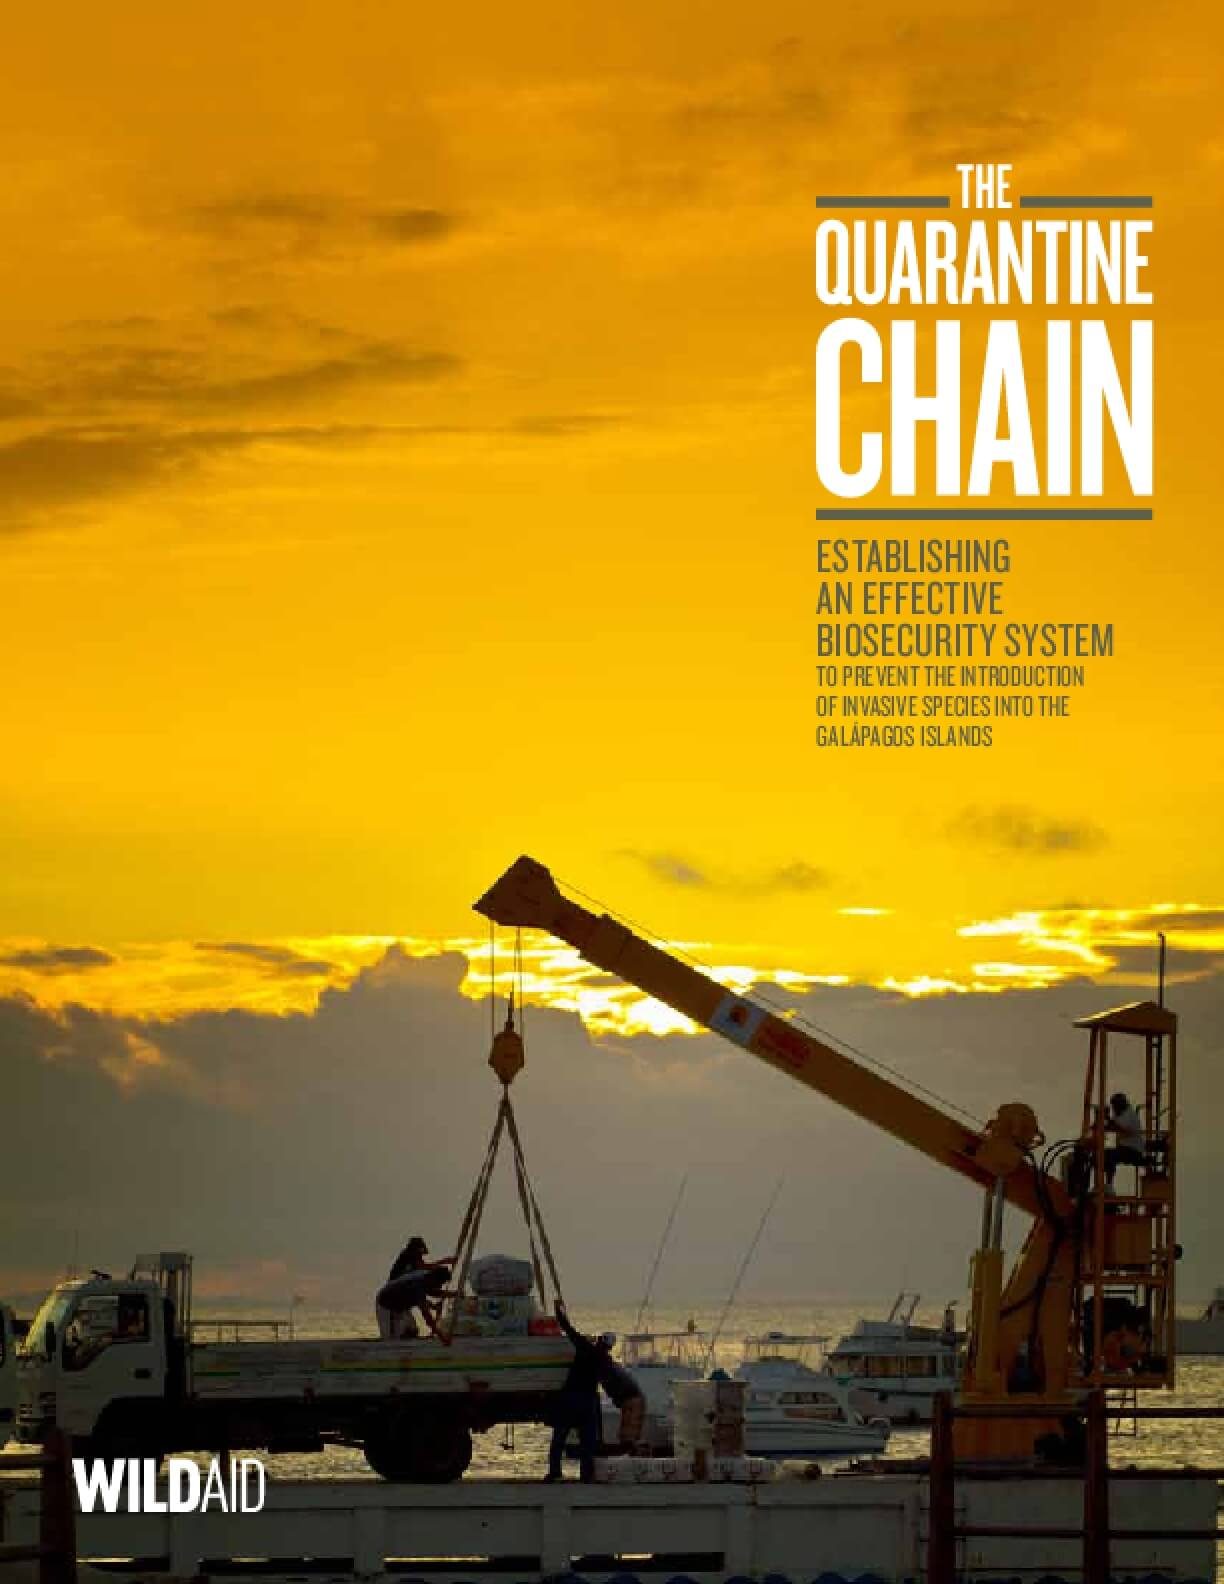 The Quarantine Chain: Establishing an Effective Biosecurity System to Prevent the Introduction of Invasive Species into the Galapagos Islands